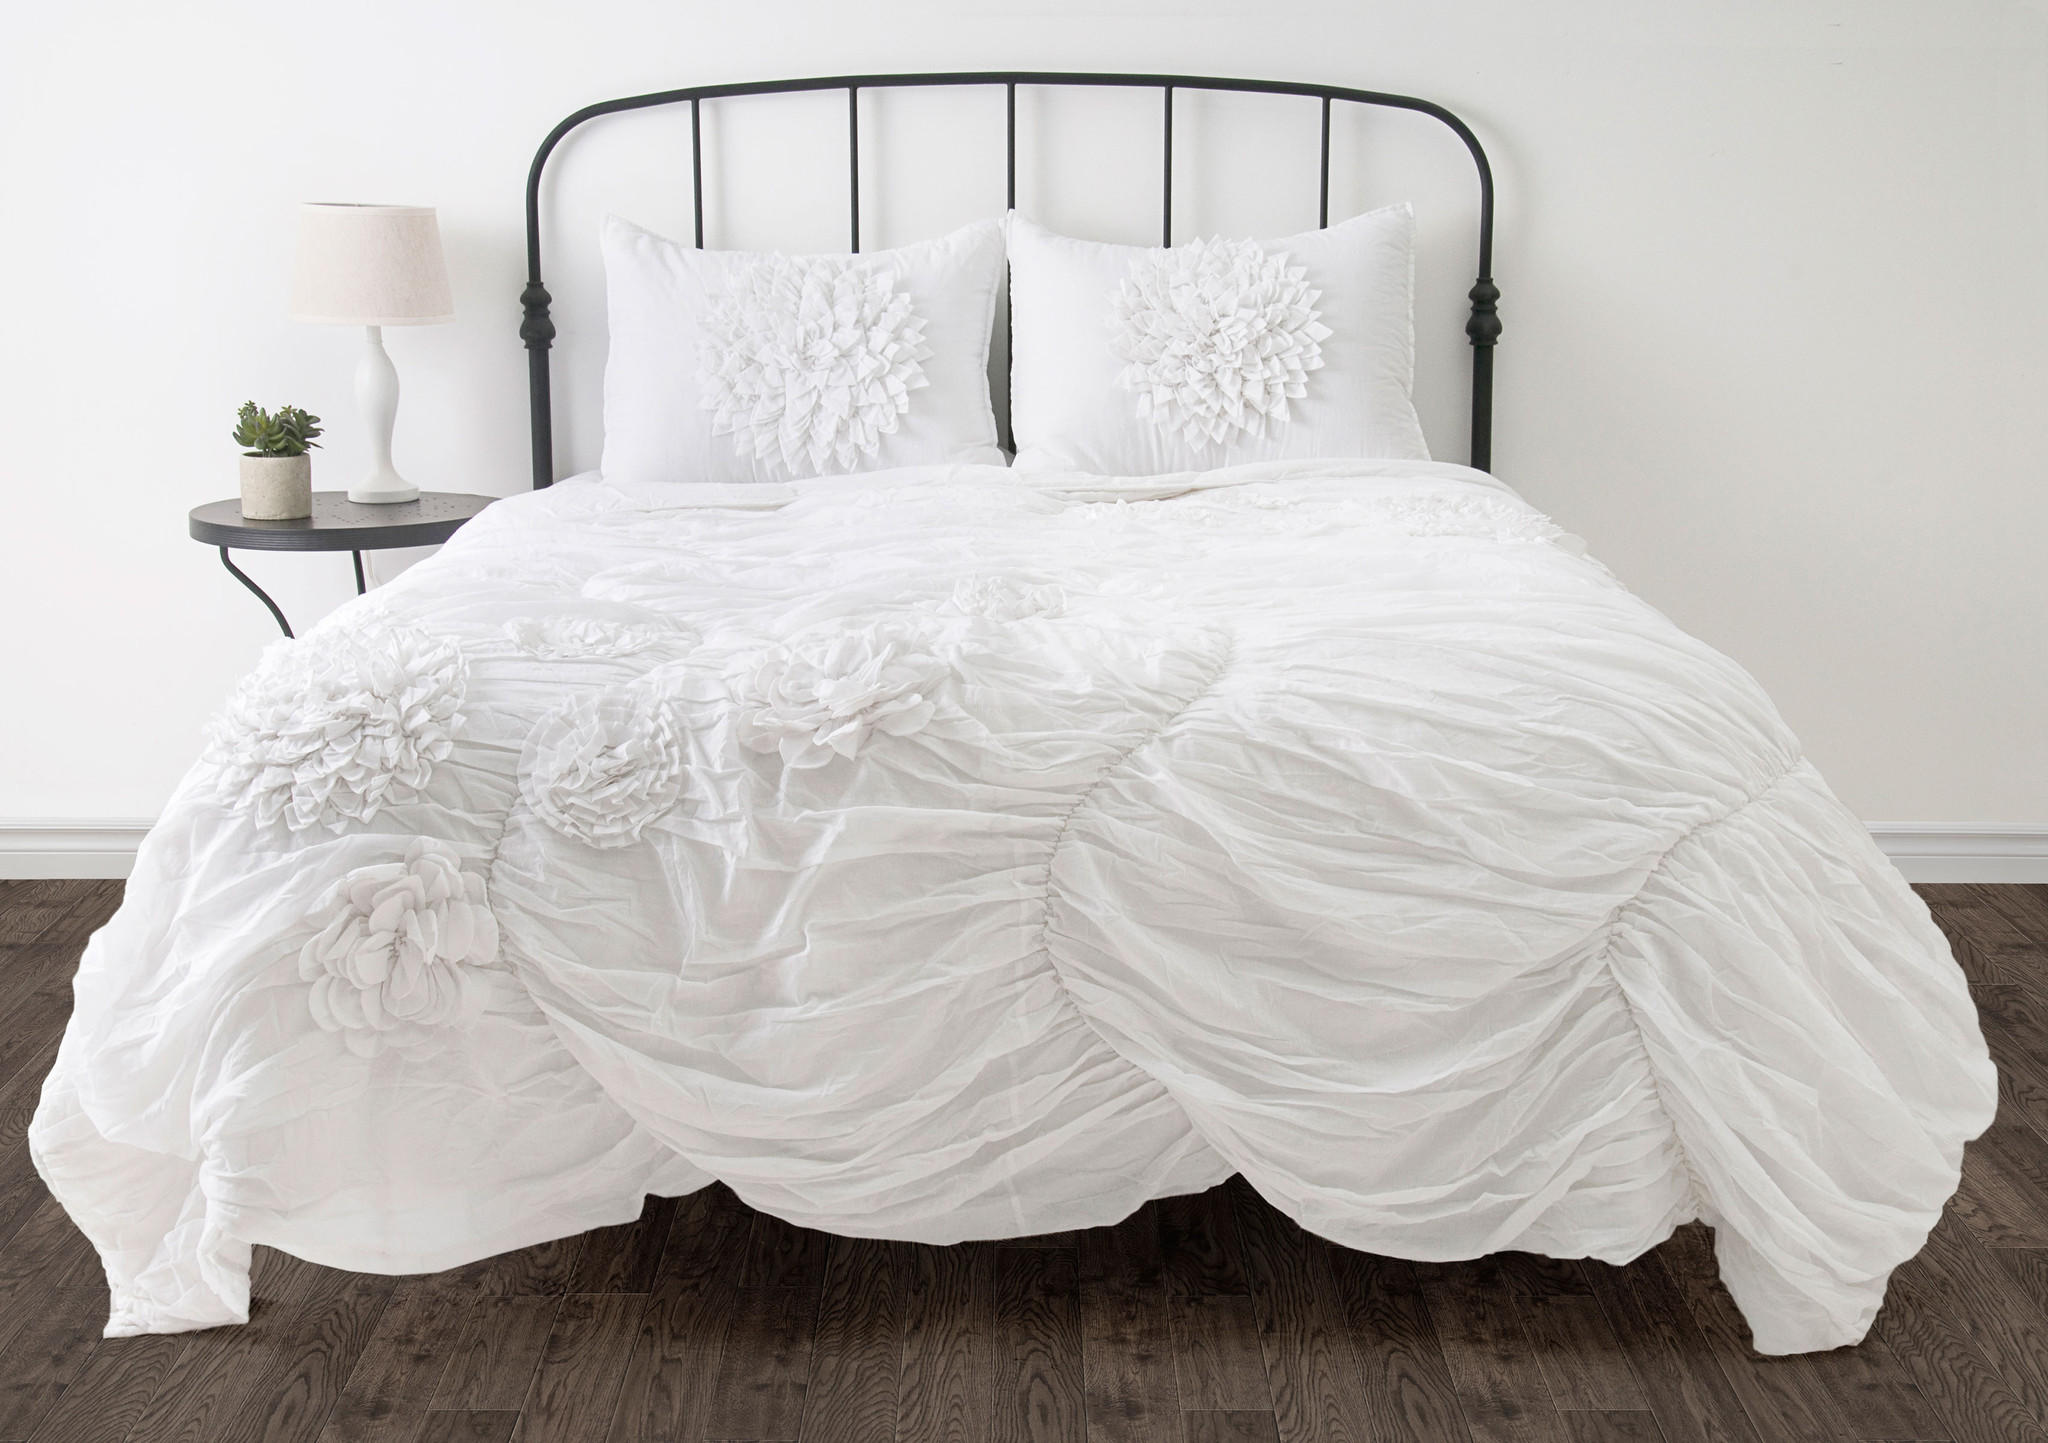 hush white twin size comforter bed set from michael anthony. Black Bedroom Furniture Sets. Home Design Ideas